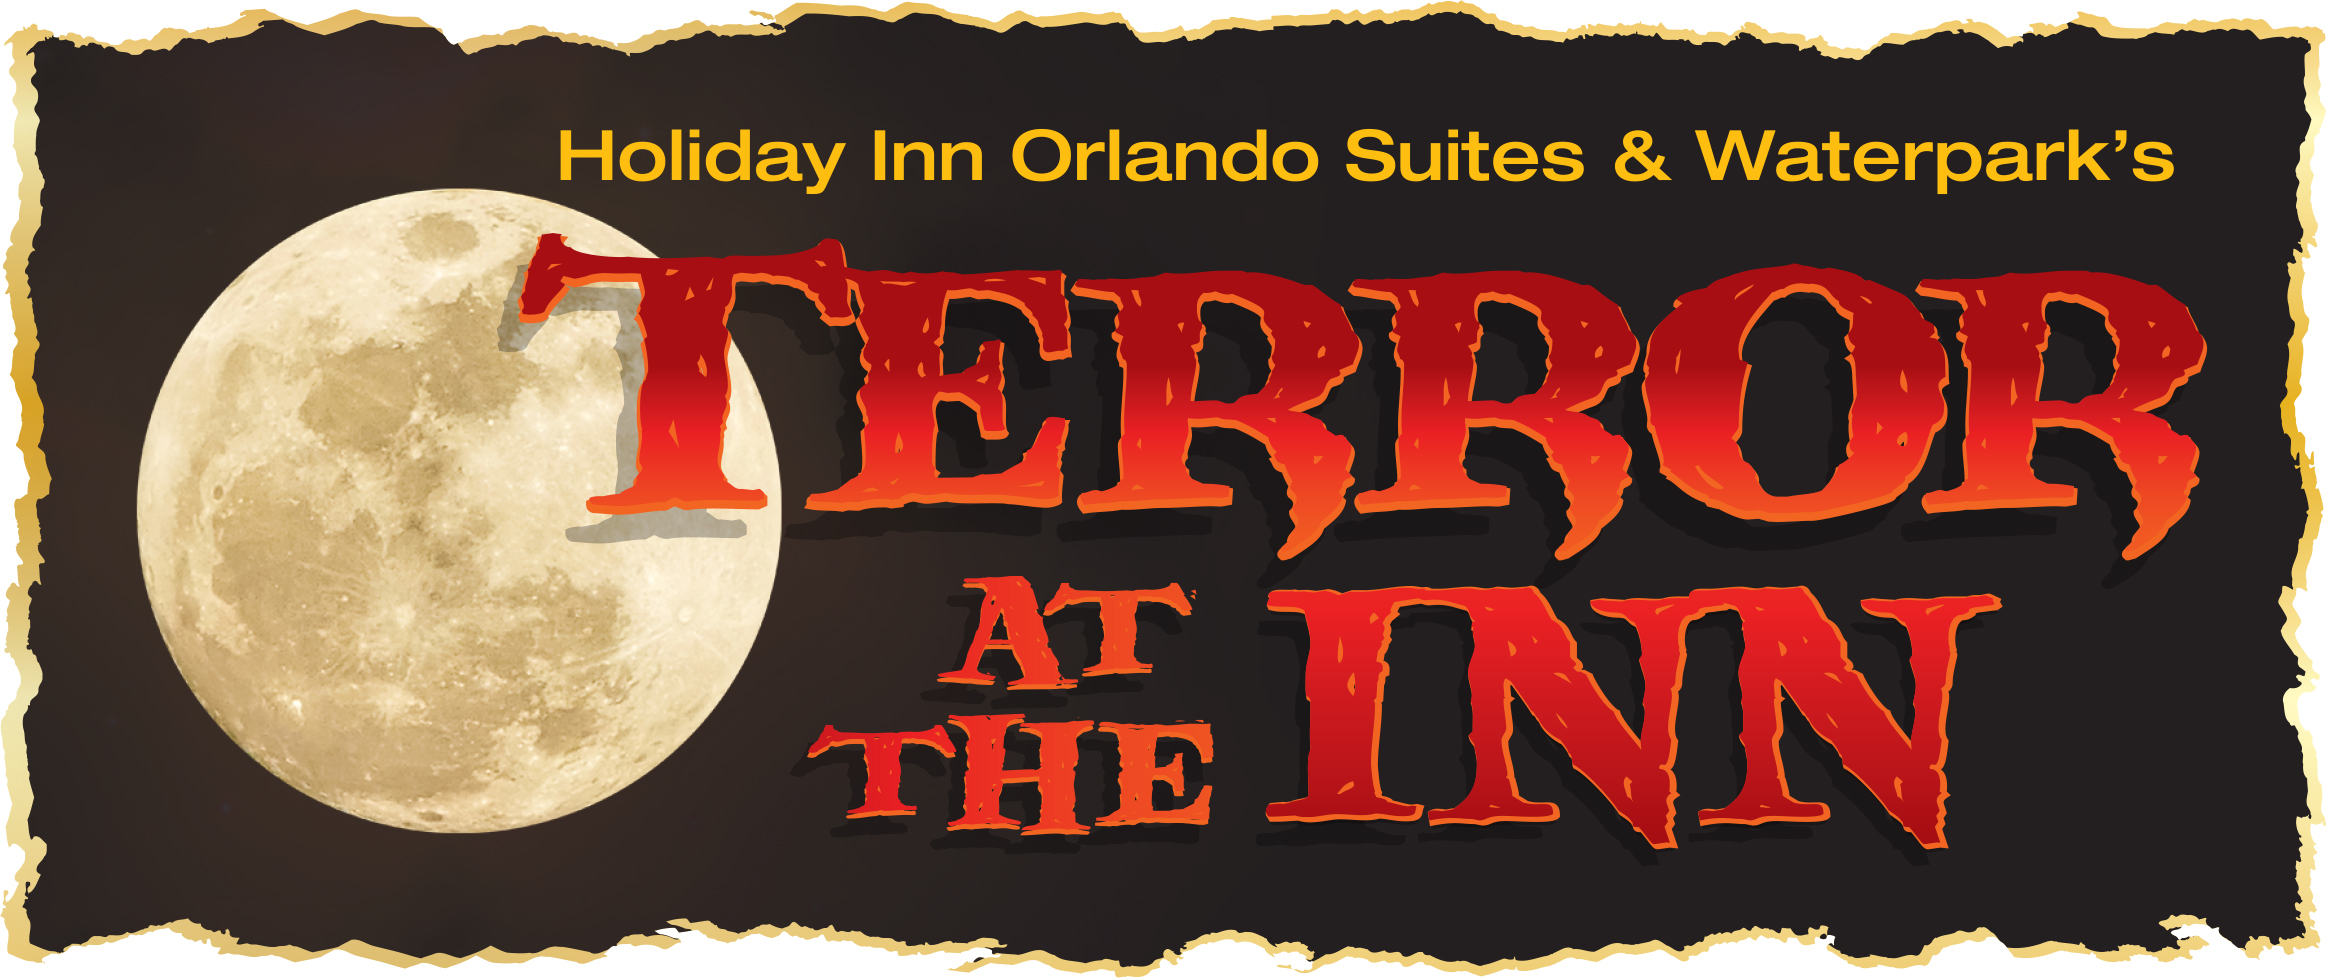 Holiday Inn Resort Orlando Suites - Waterpark: Main Image